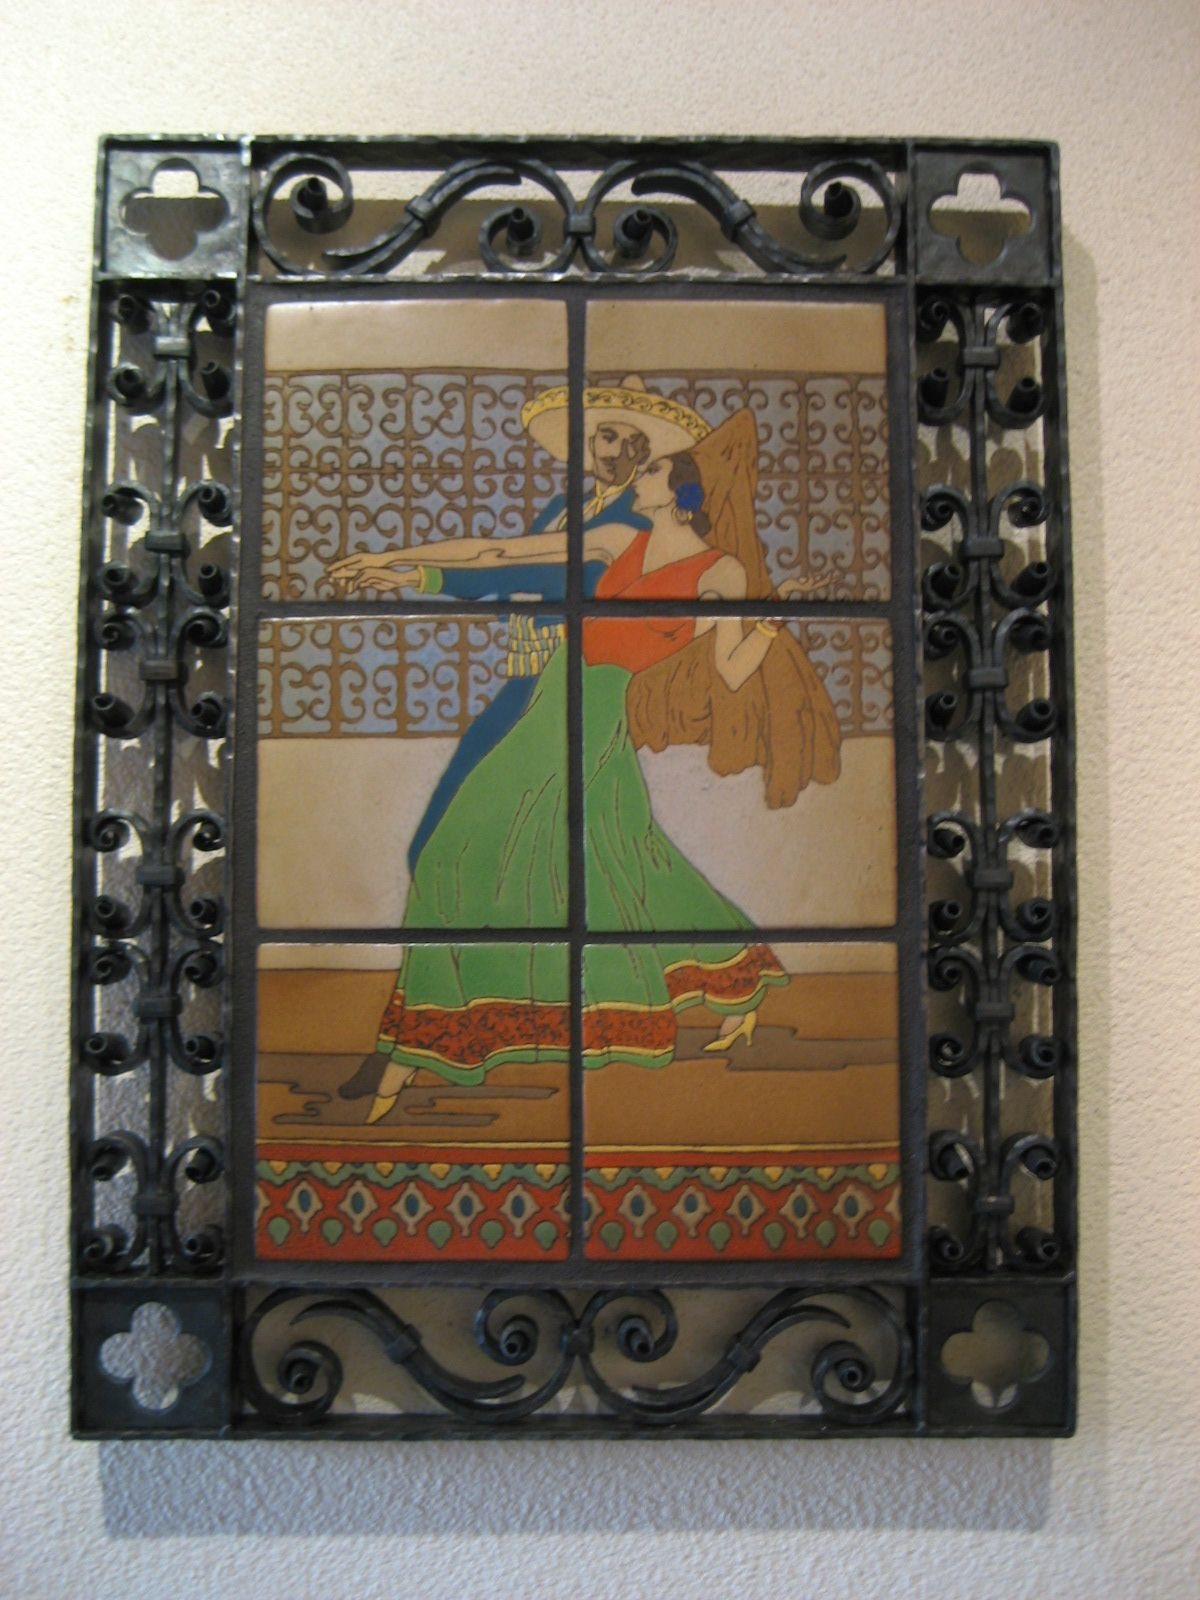 Very Rare Tile Mural In Our Very Detailed Wrought Iron Frame